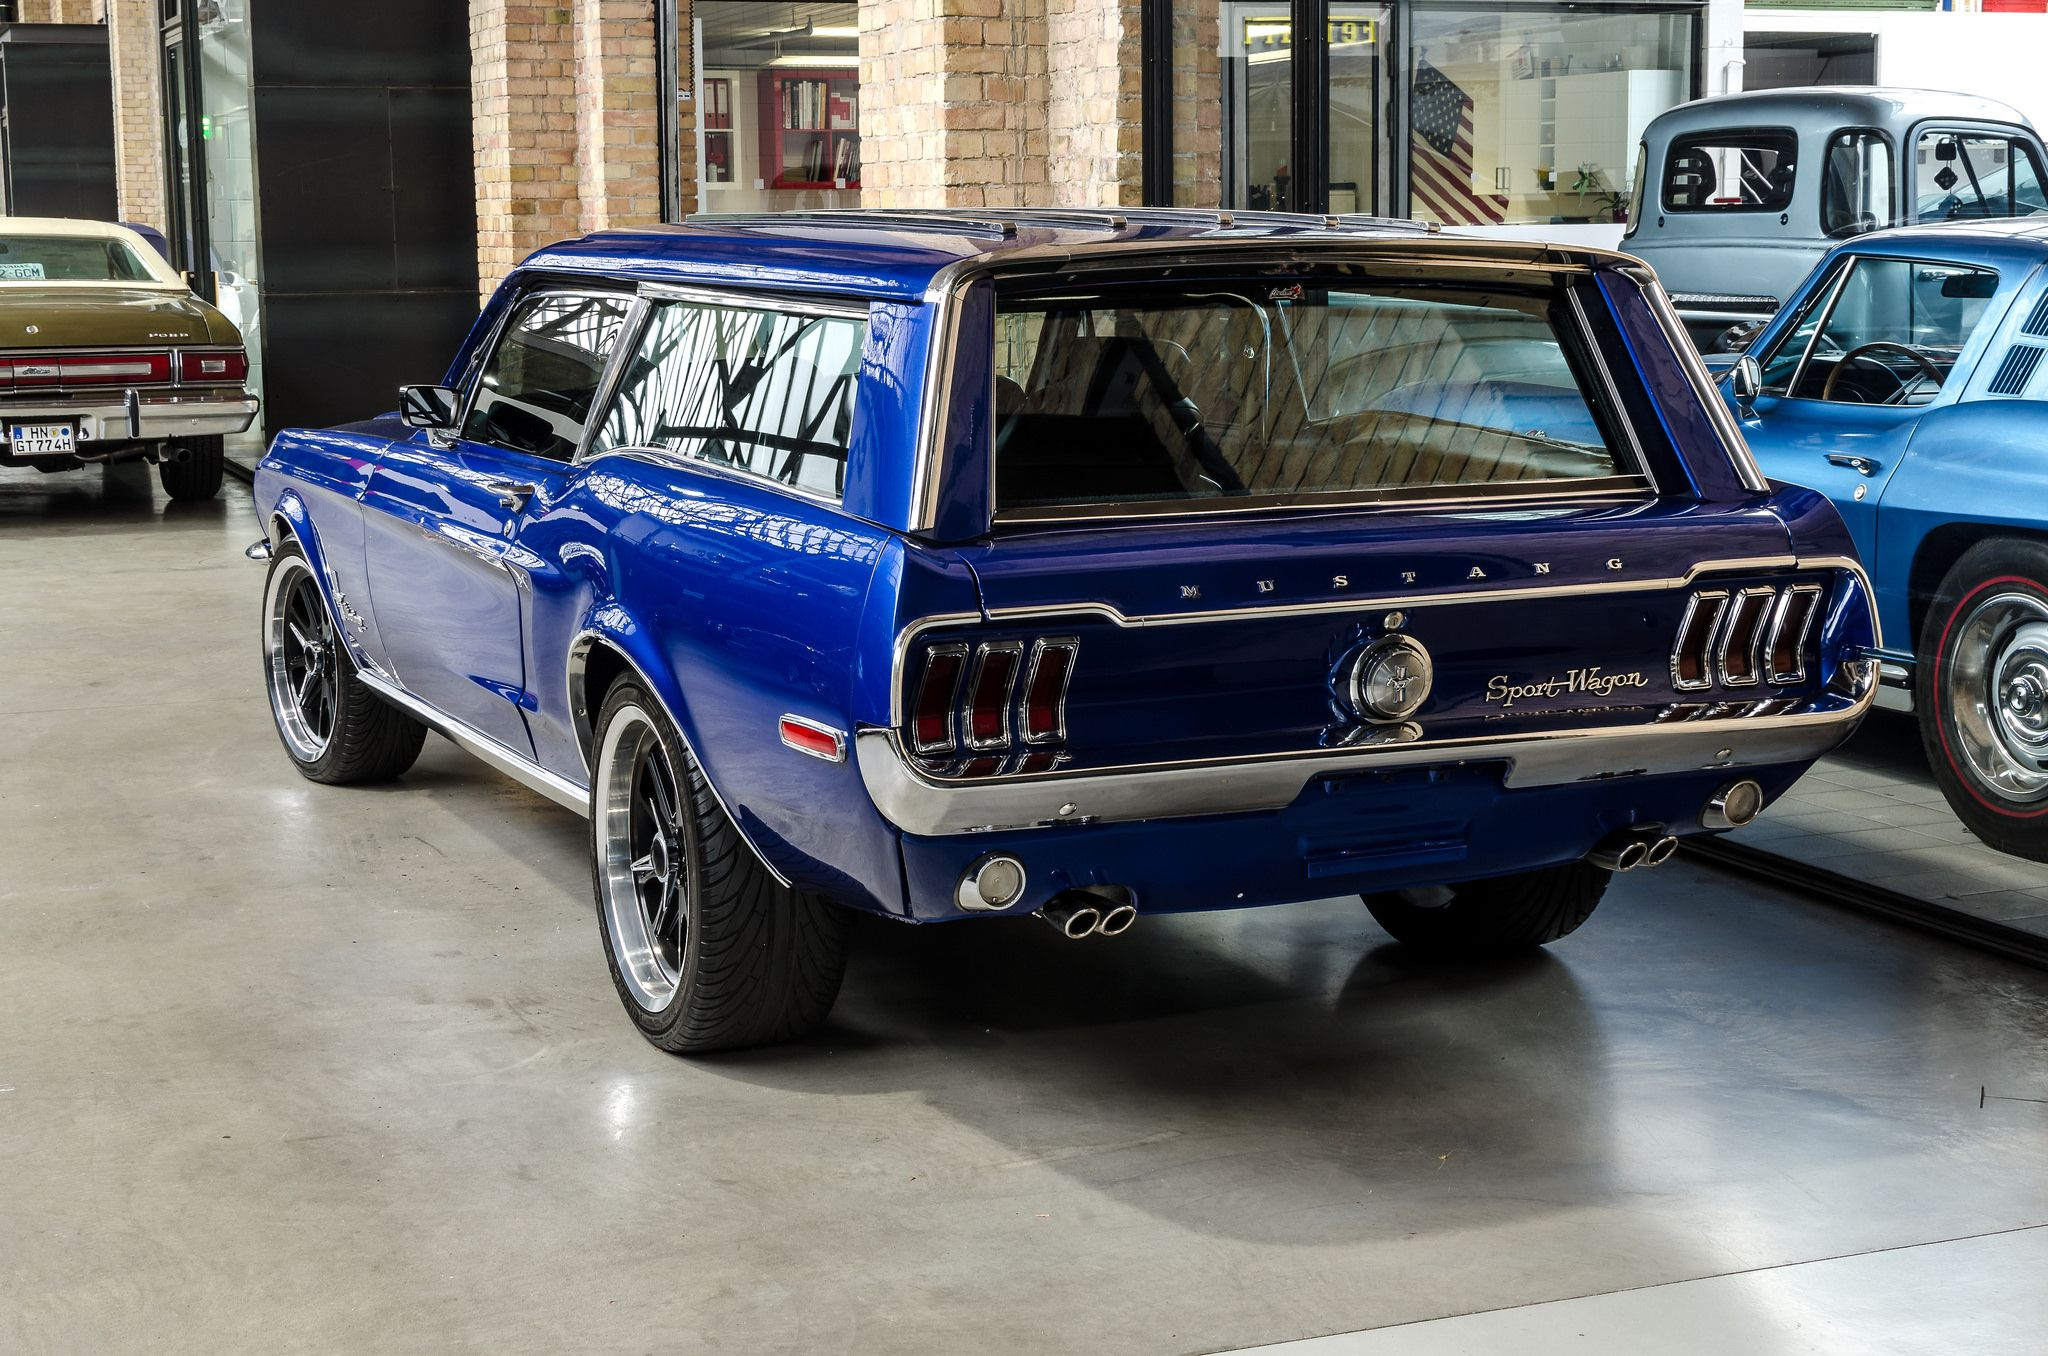 Ford Mustang Sports Wagon one off conversion Station Wagon